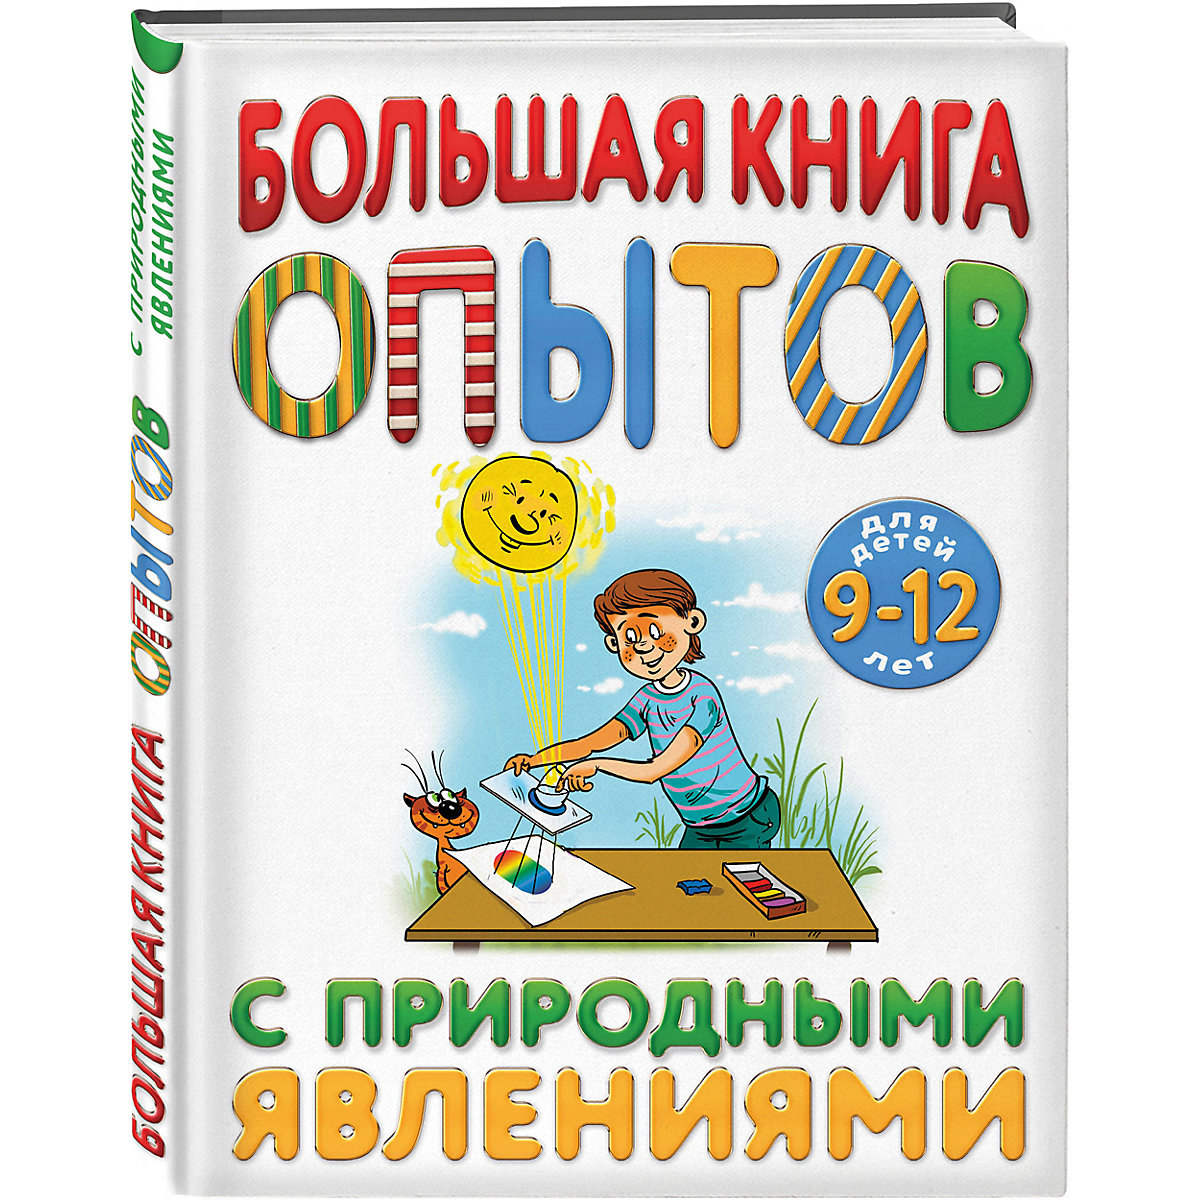 Books EKSMO 7932257 Children Education Encyclopedia Alphabet Dictionary Book For Baby MTpromo